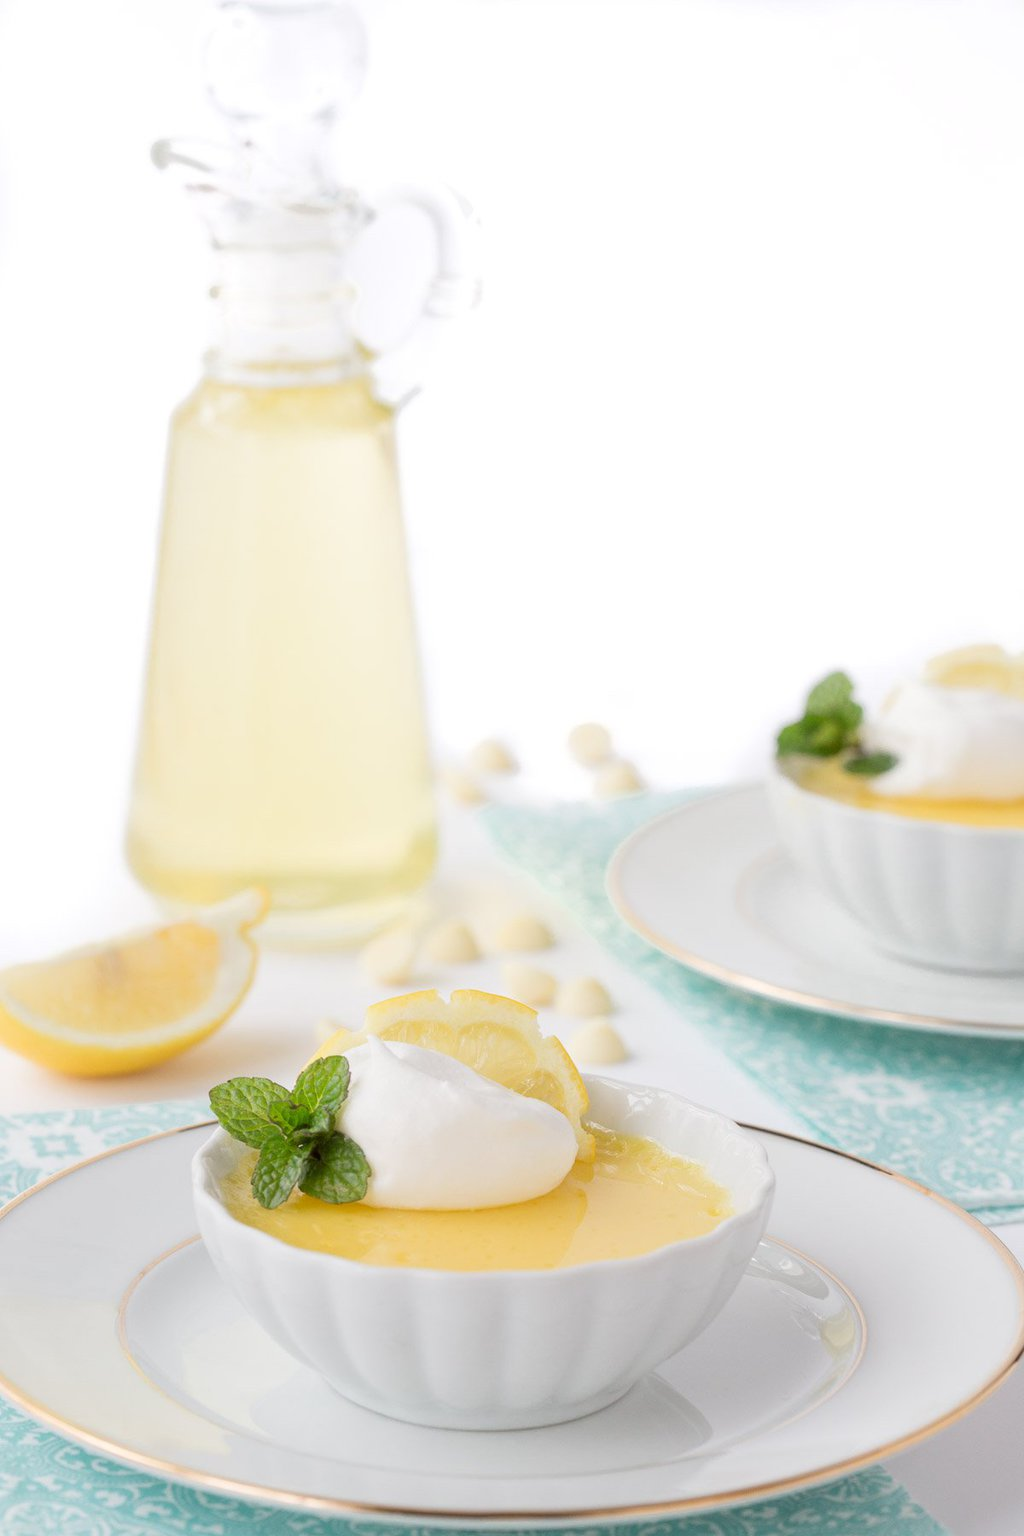 Photo of small white bowls of Lemon and White Chocolate Pots de Crème garnished with mint leaves and whipped cream with Limoncello Syrup in a small glass pitcher in the background.